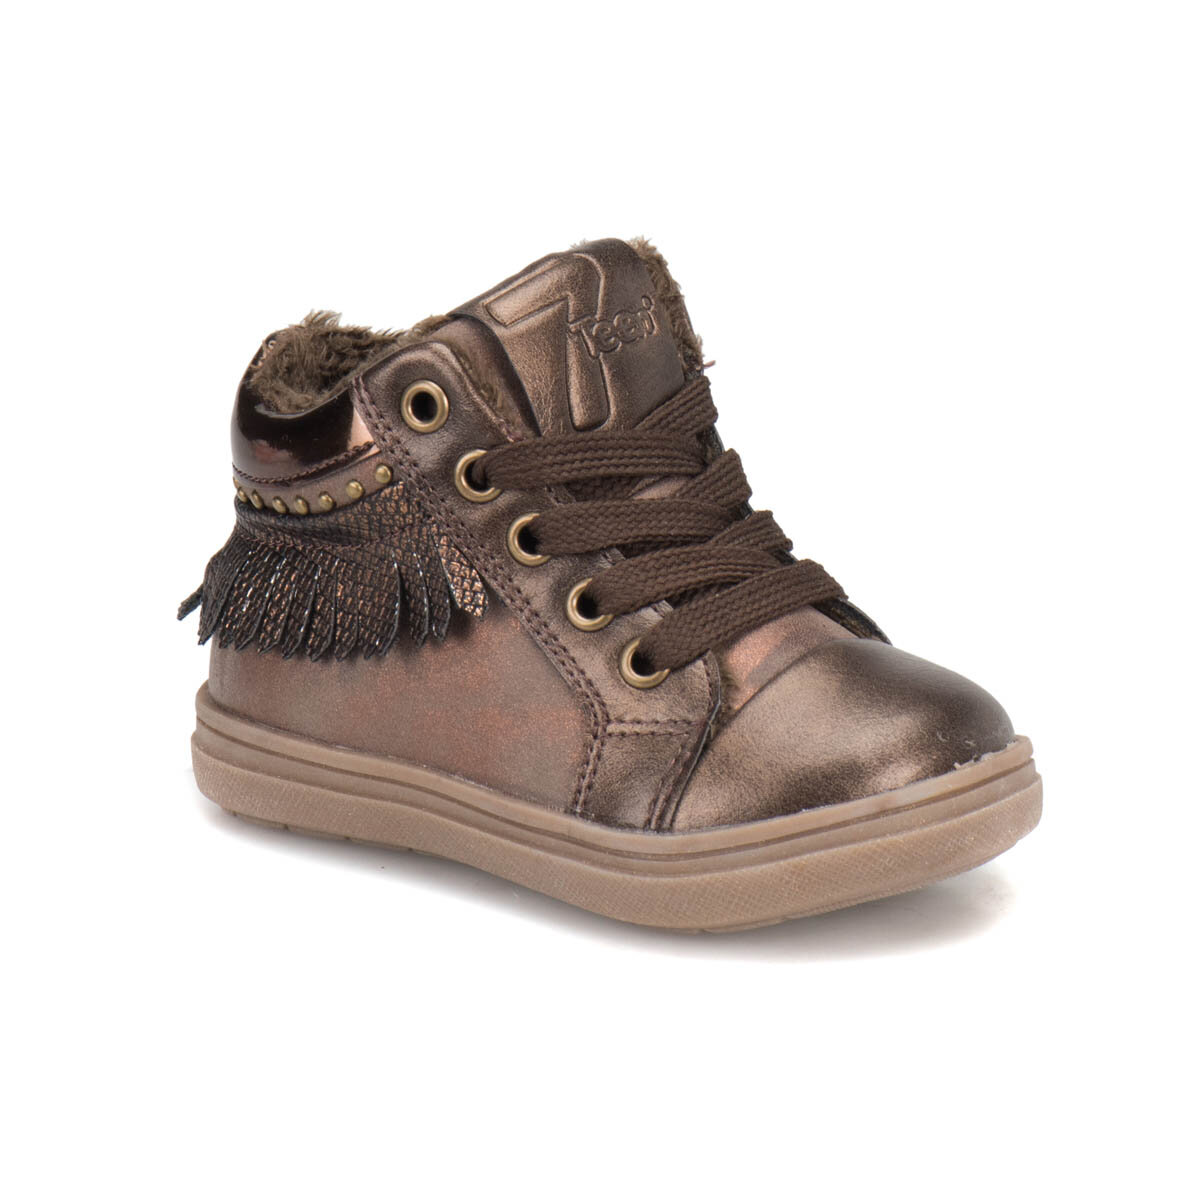 FLO 174-099 Brown Female Child Classic Boots Balloon-s